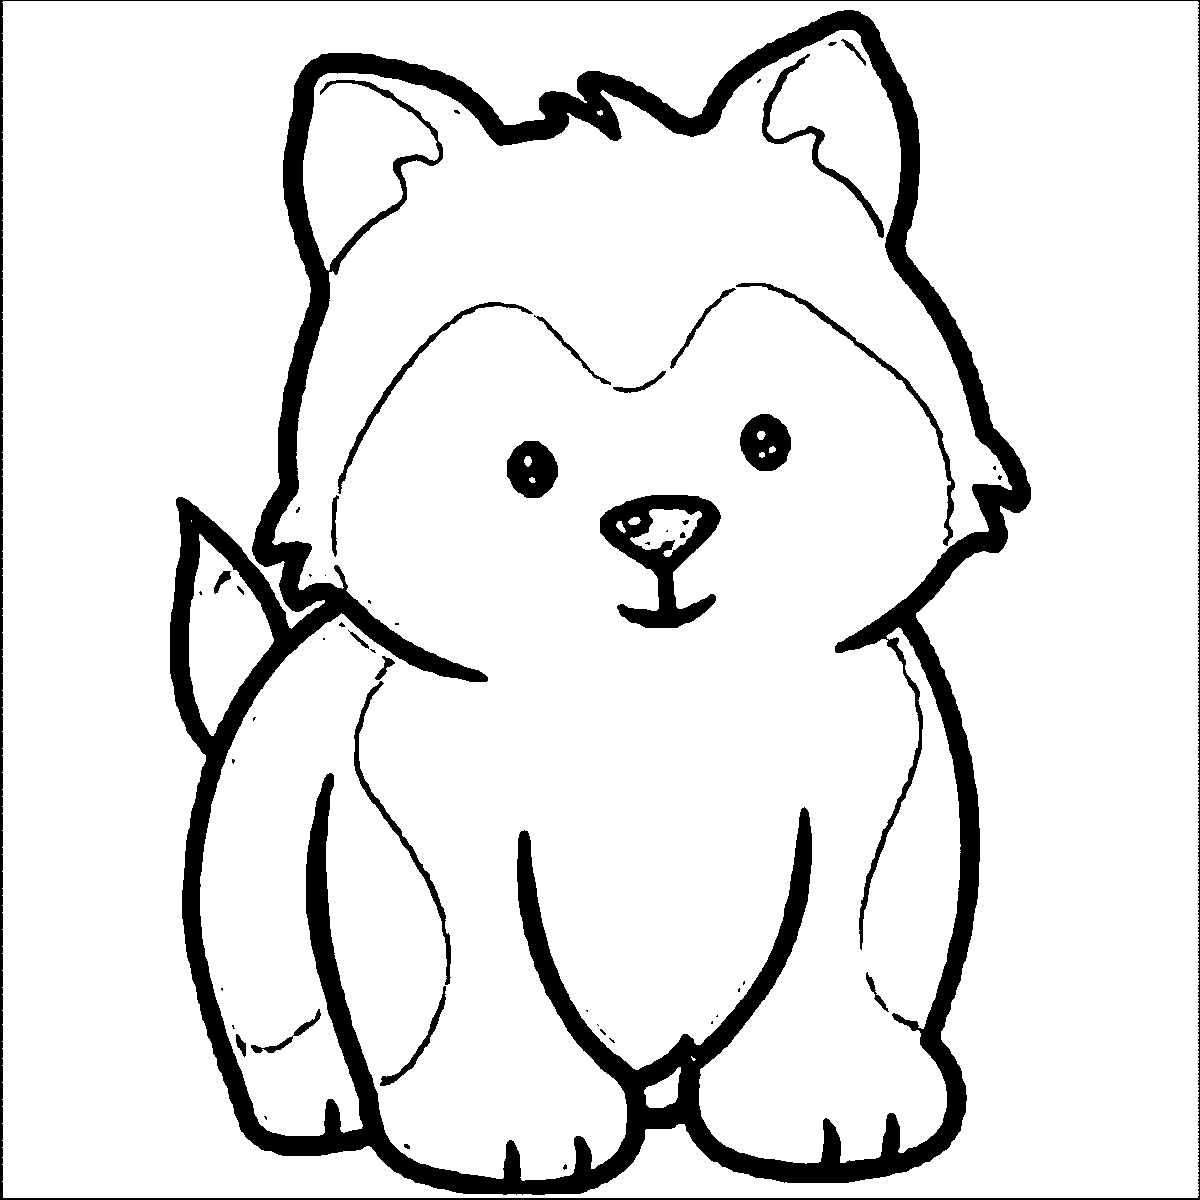 coloring picture dog dog free to color for children cute female dog dogs coloring picture dog